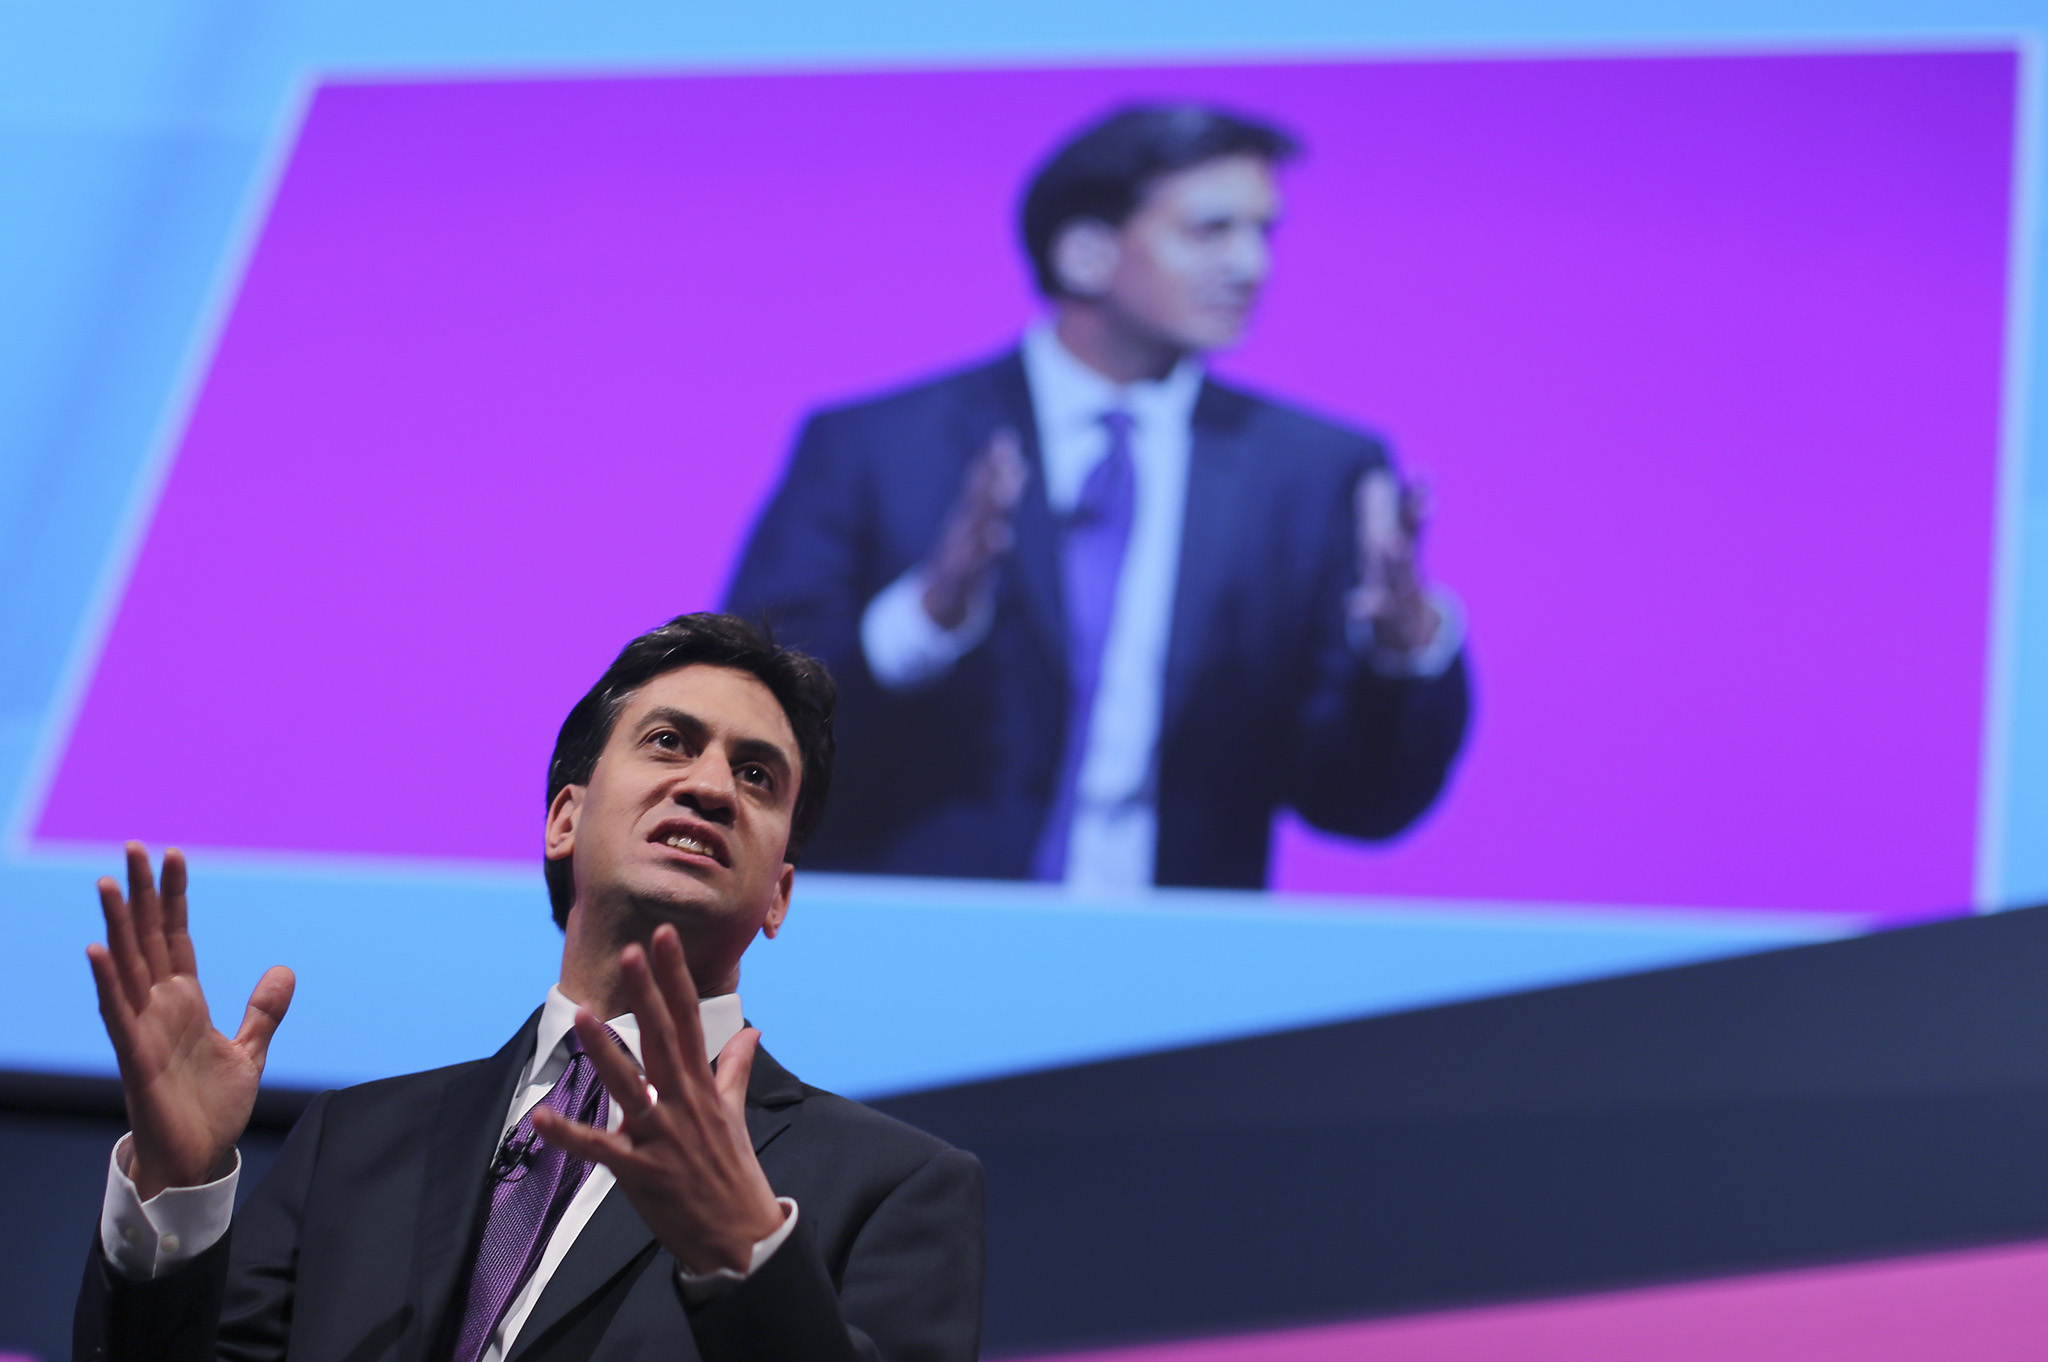 Ed Miliband invites Labour members of the No campaign in the Scottish referendum on stage for a photocall at the Labour party conference in Manchester today.